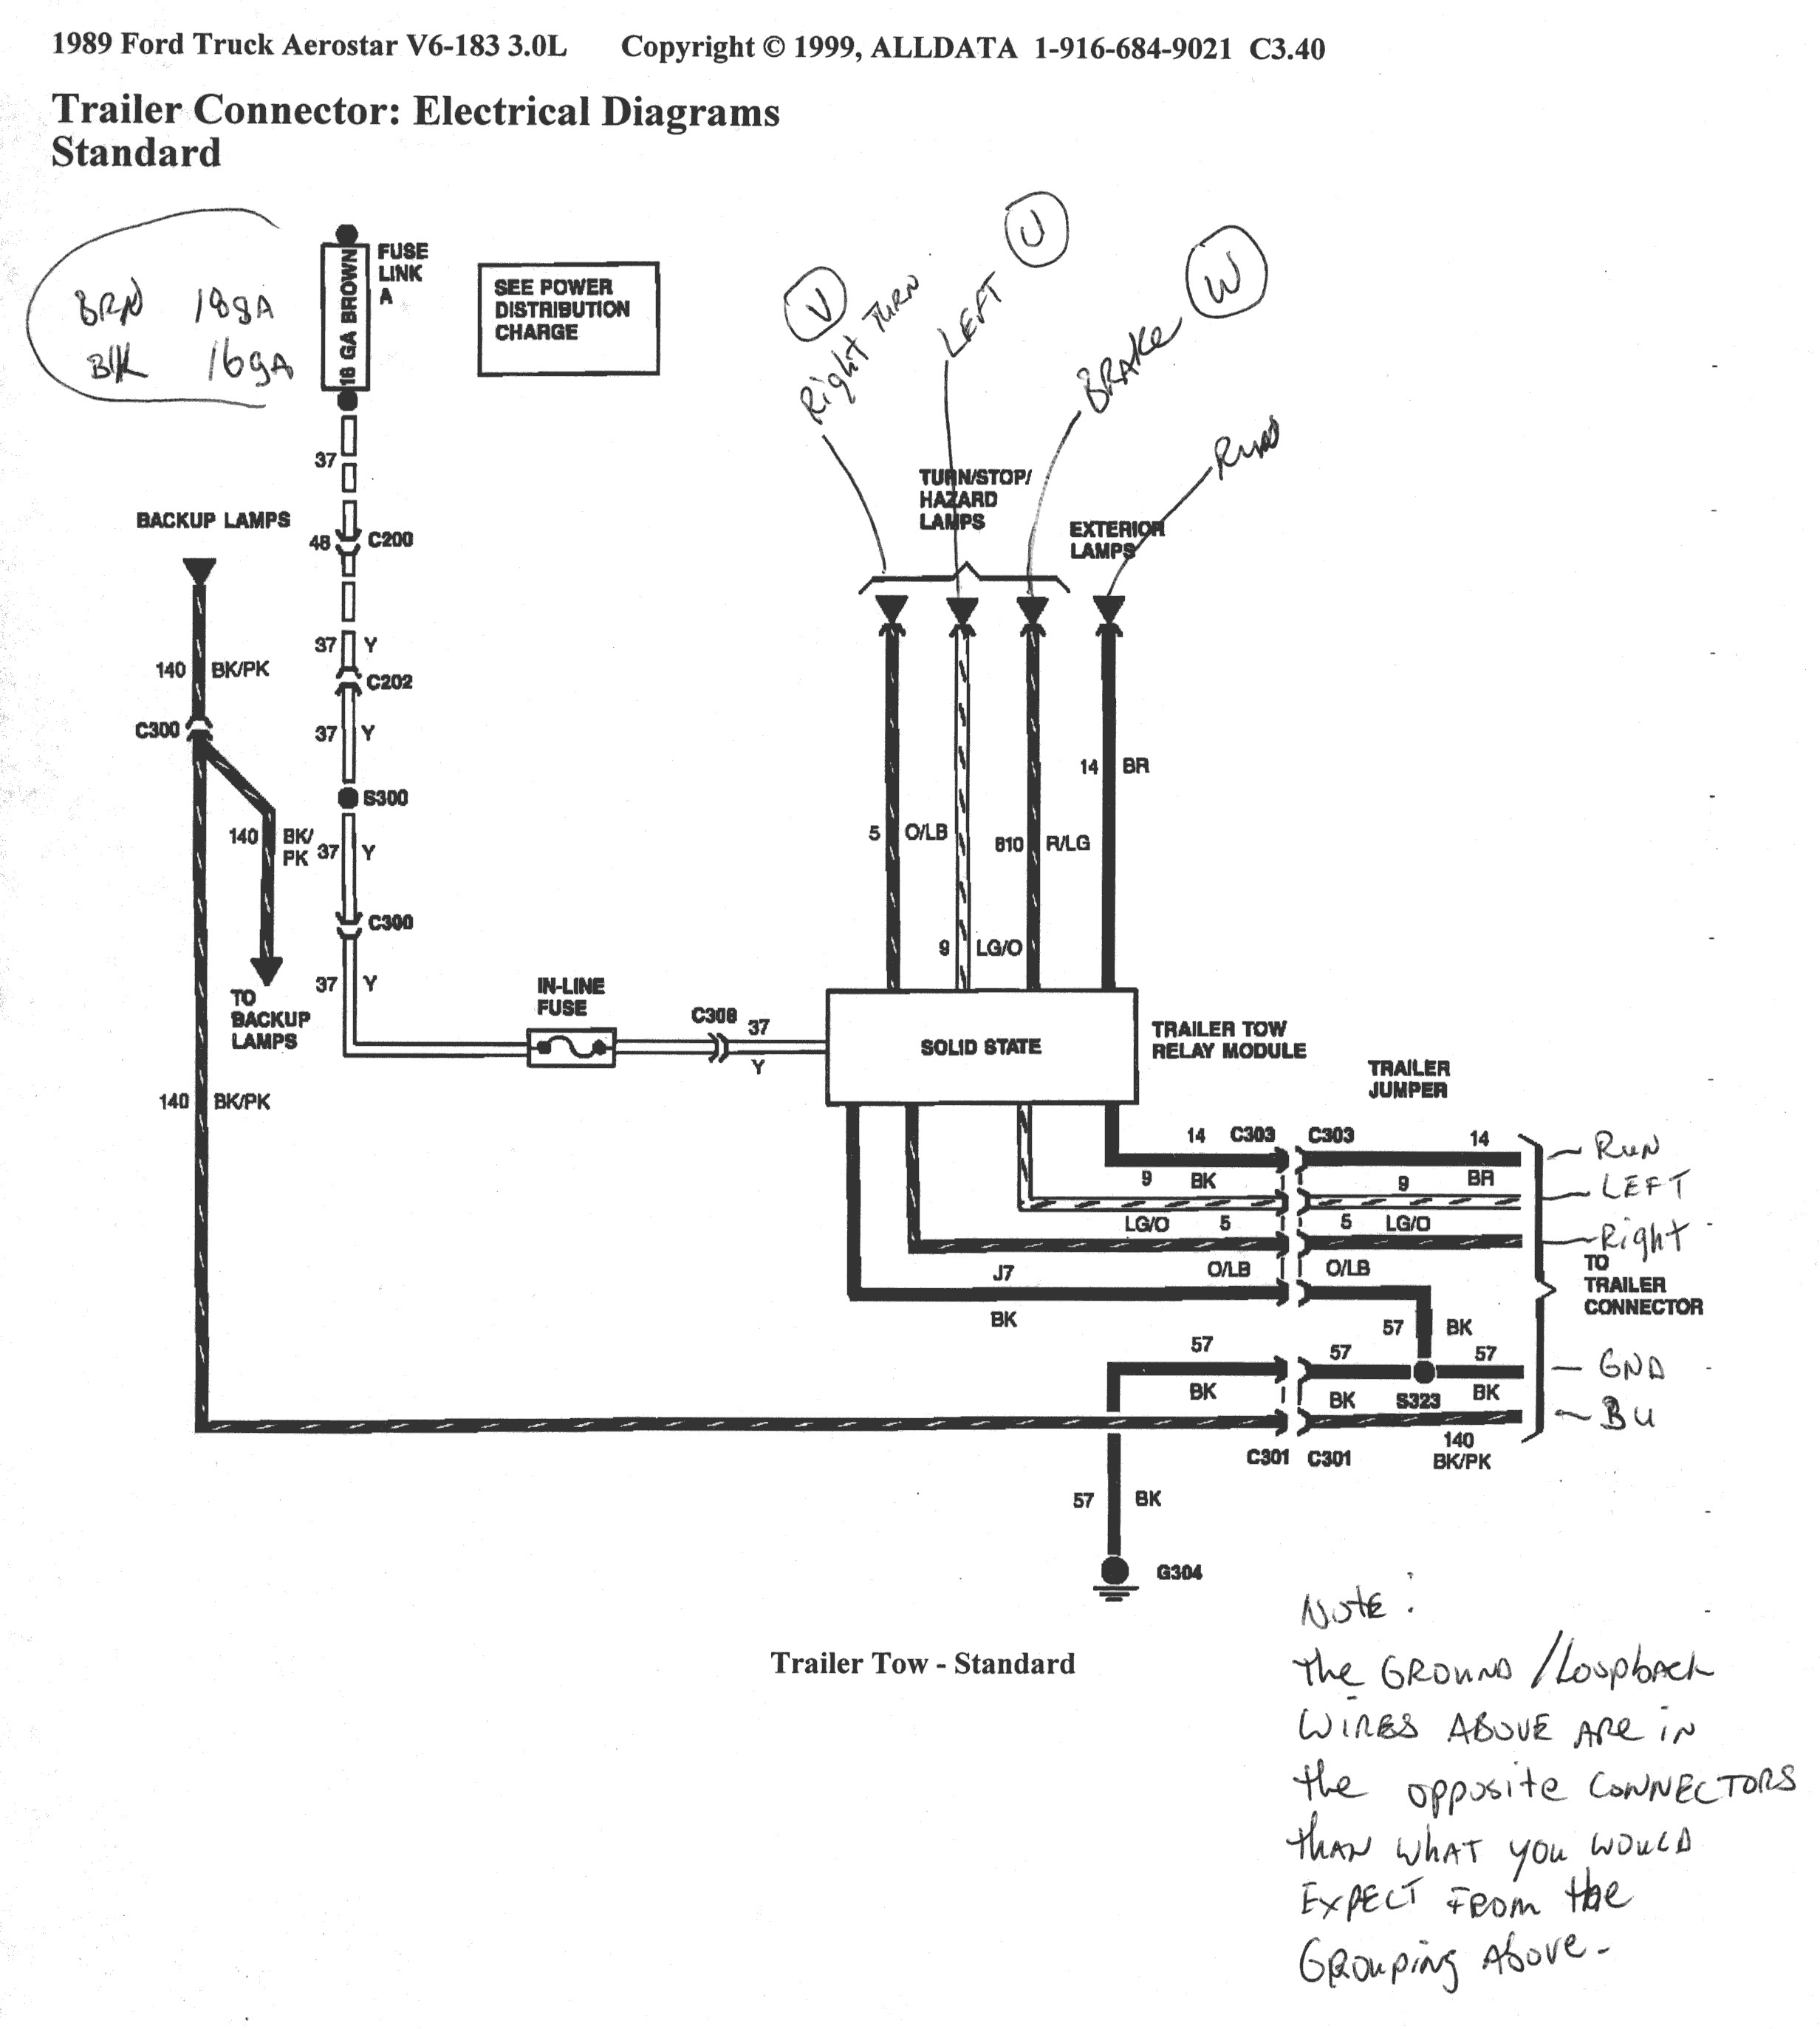 ford 7 pin trailer wiring diagram Download-7 Pin Trailer Connector Plug Wiring Utility With Ford F250 Diagram 6 14-r